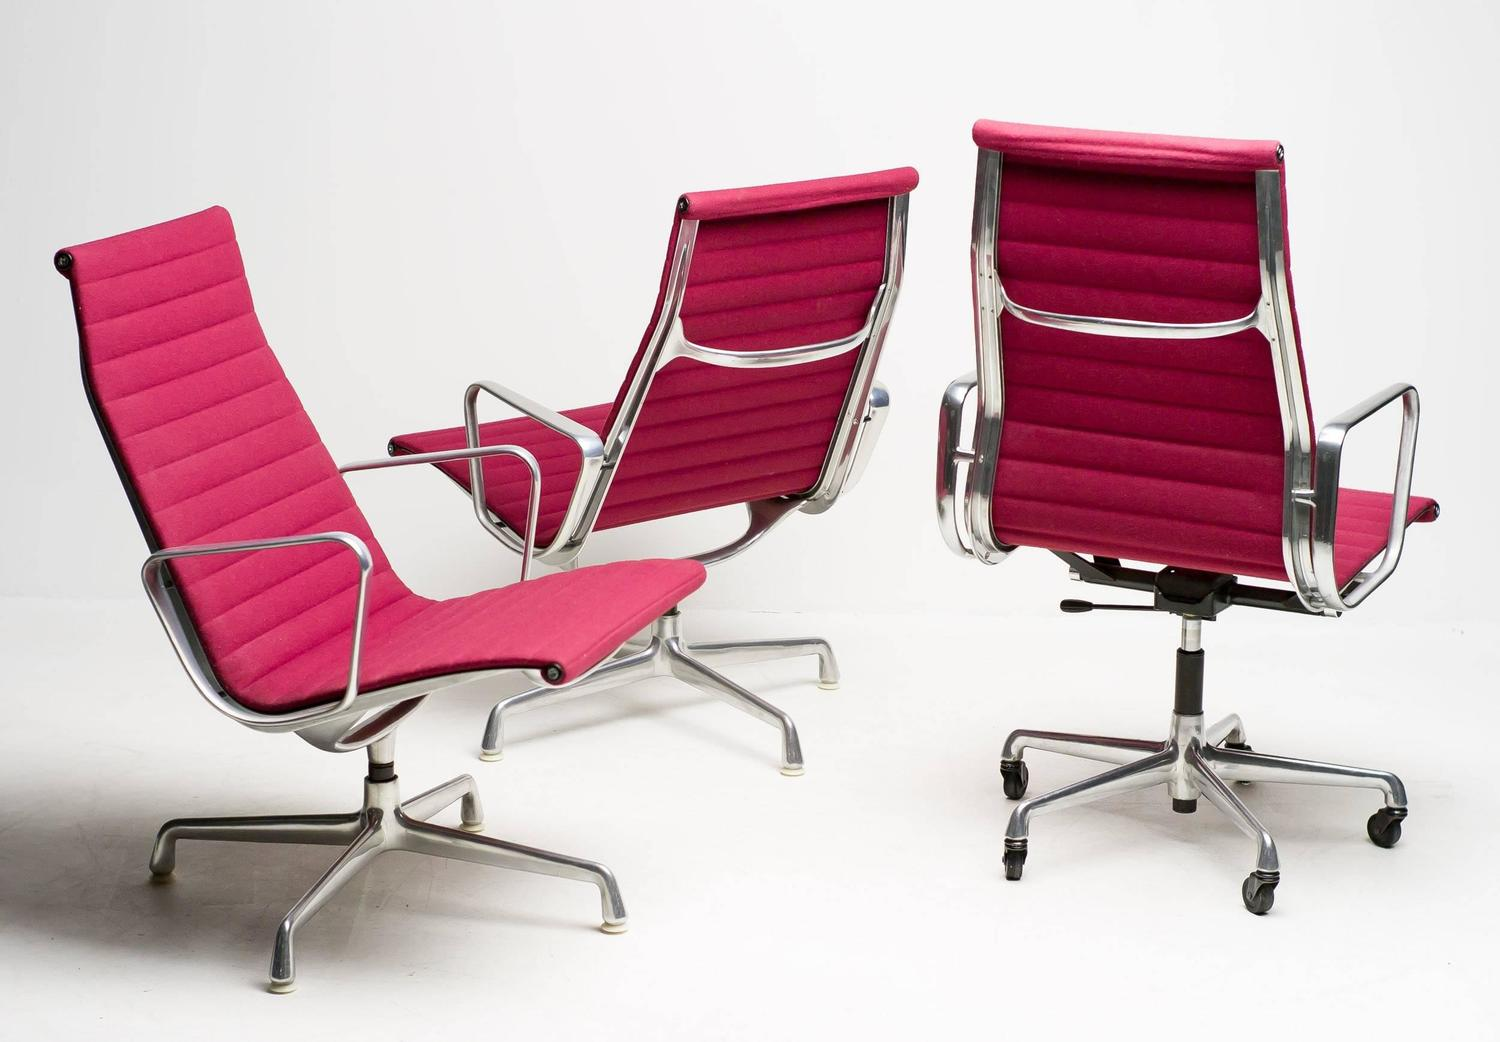 Eames Aluminium Group Chairs in Red For Sale at 1stdibs